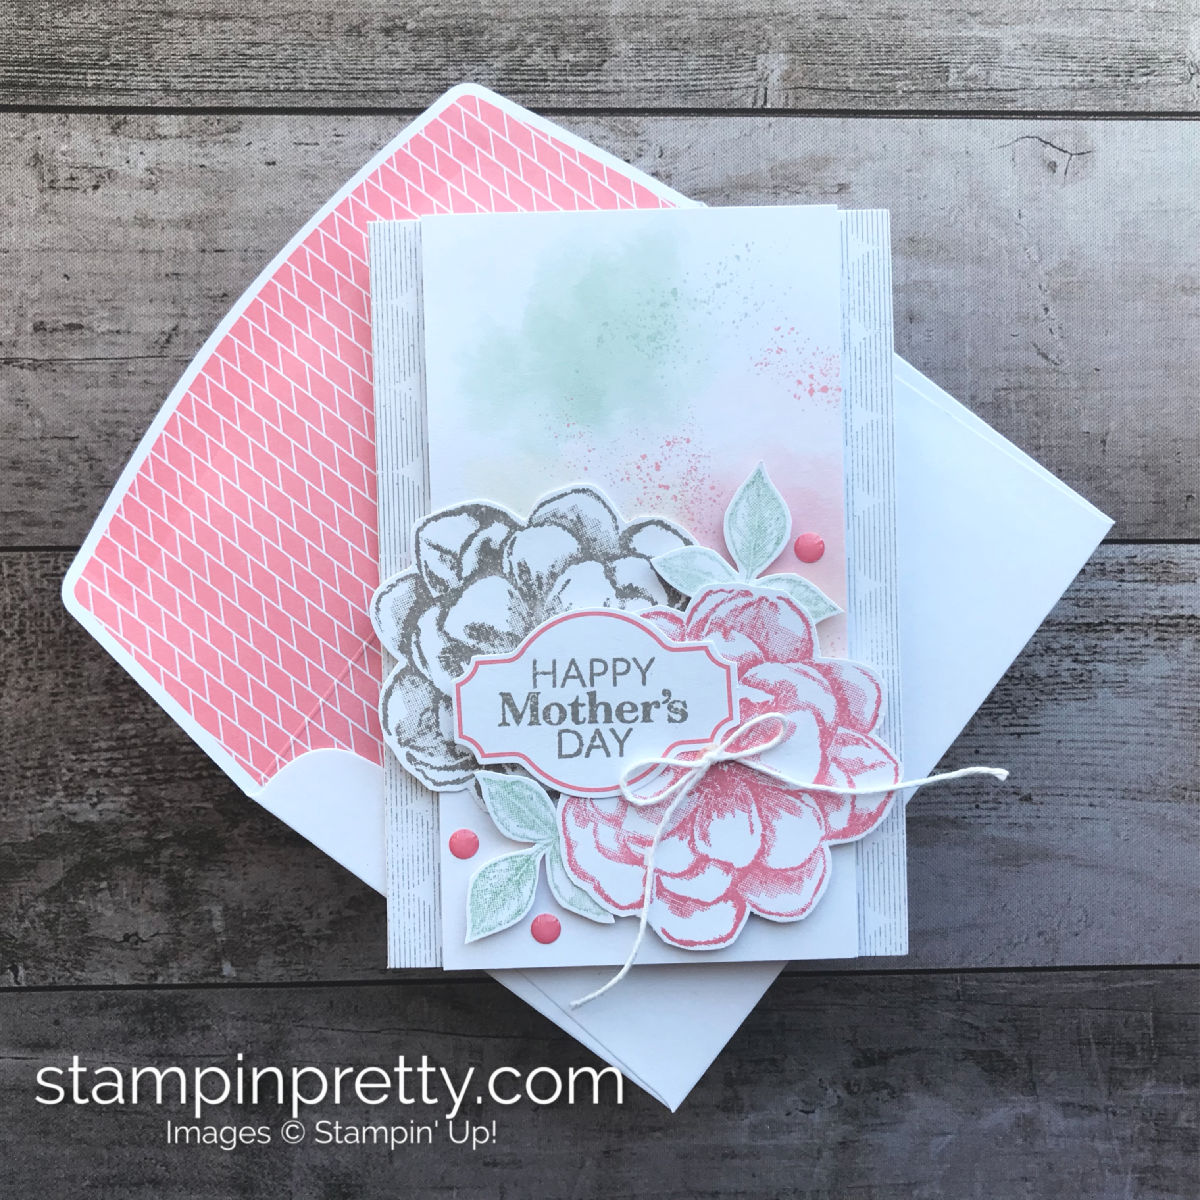 Paper Pumpkin April 2020 Card Ideas April Paper Pumpkin Card Ideas & Shelli's Kit Coming! | Stampin